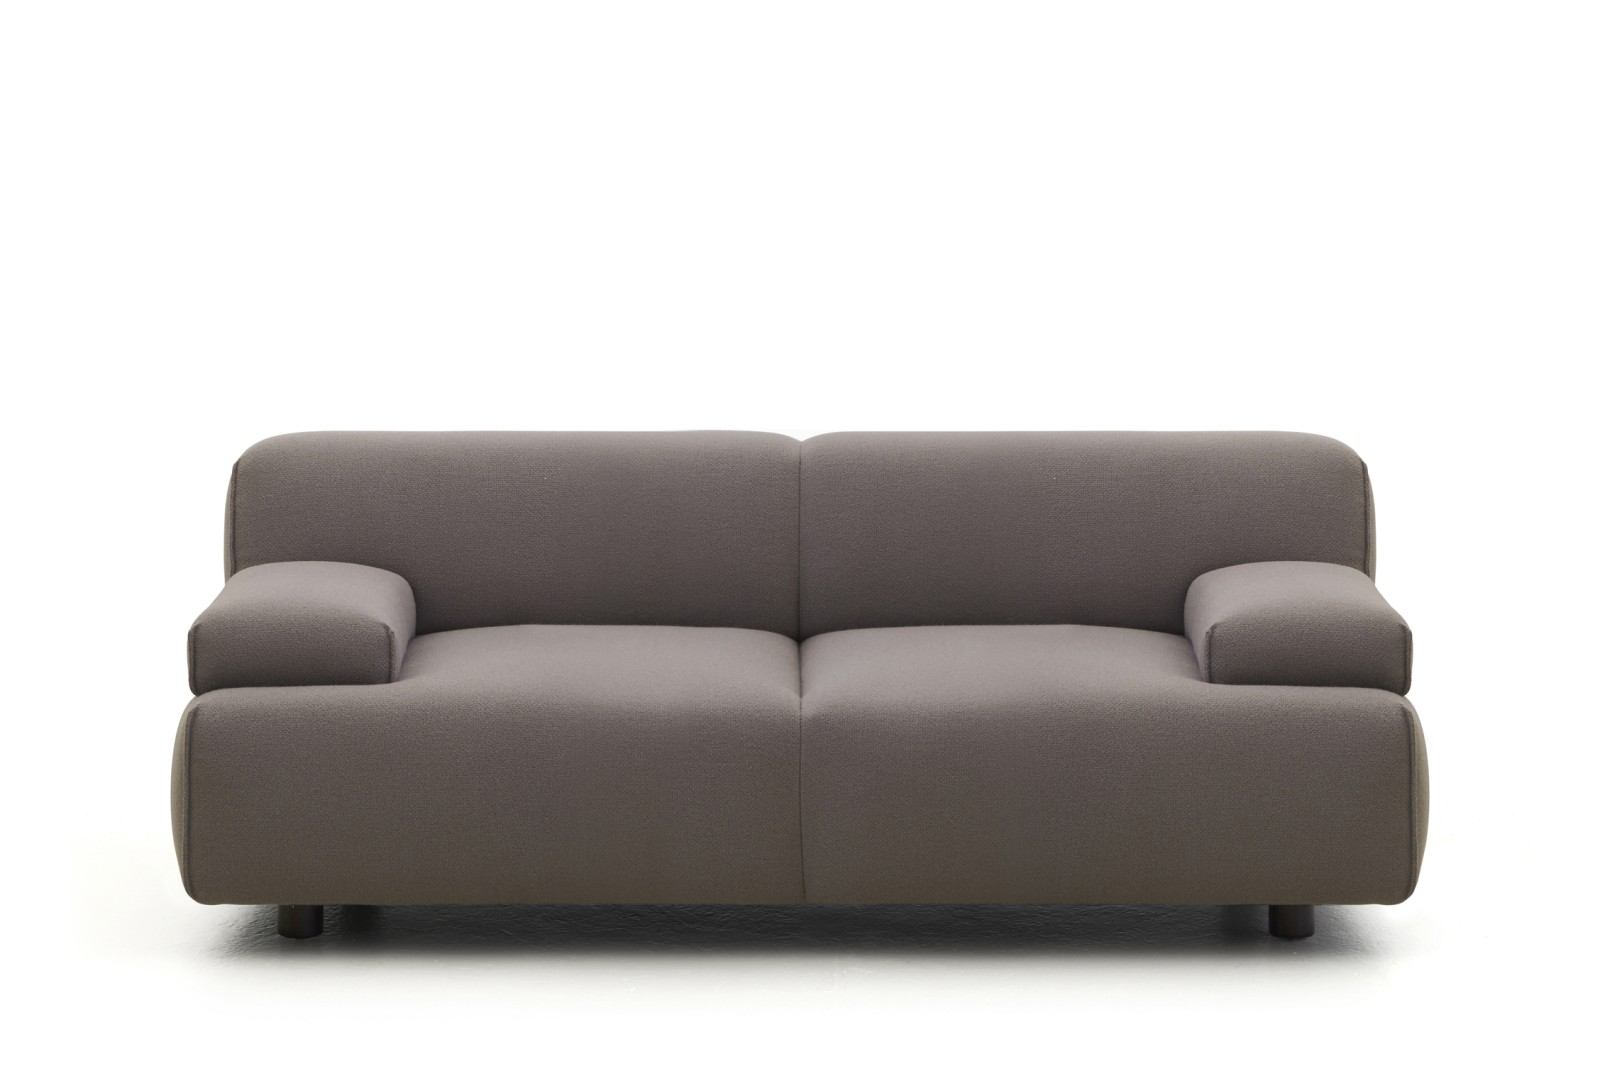 HM108N Plump 2-Seat Sofa Camira Aquarius, Natural Lacquered Oak